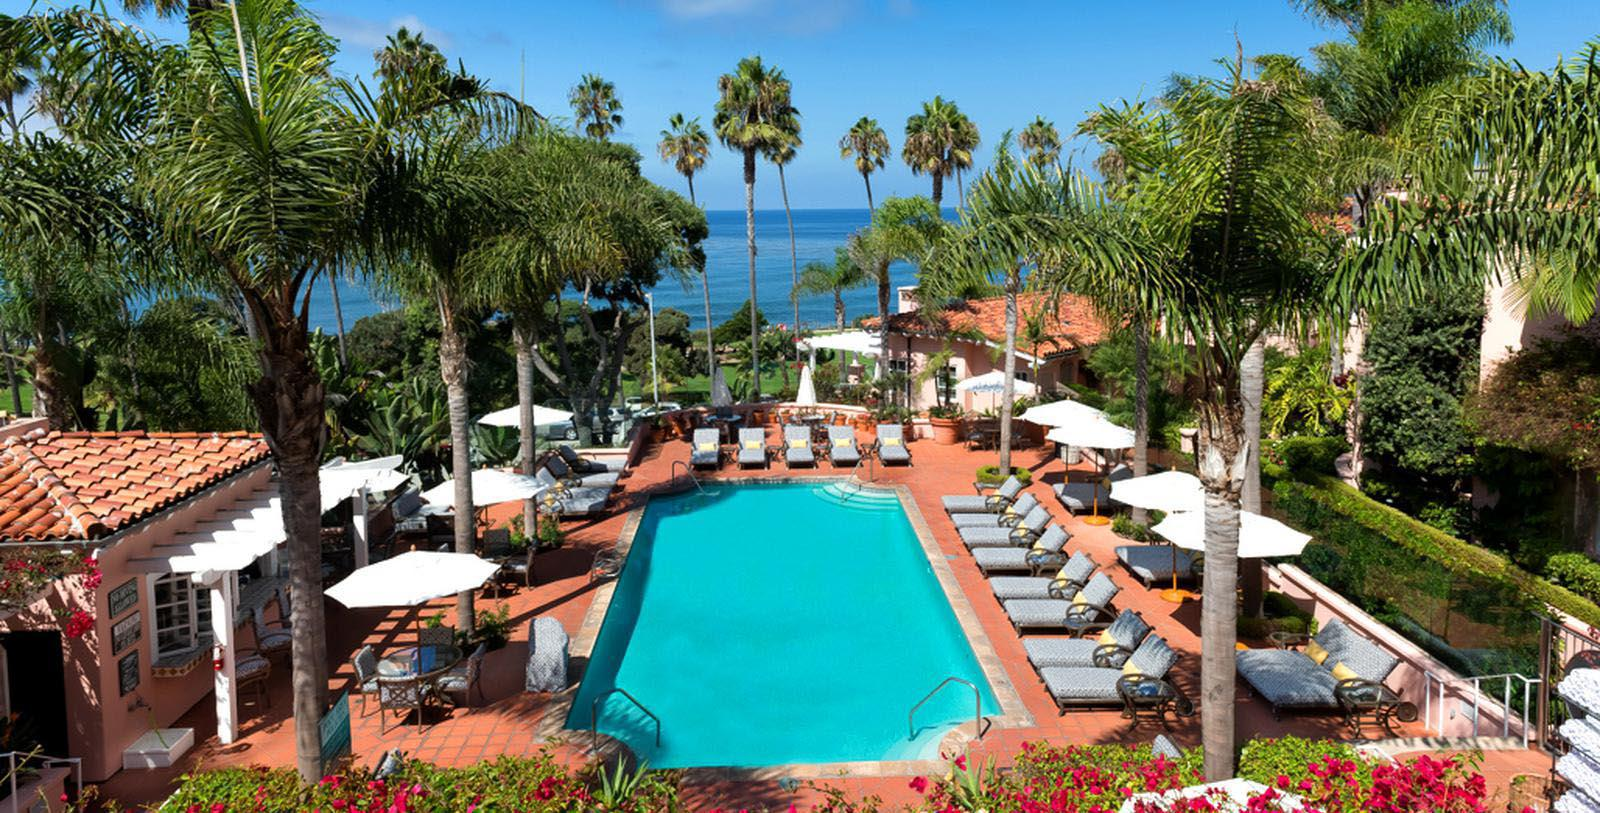 Image of Outdoor Pool, La Valencia Hotel in La Jolla, Califronia, 1926, Member of Historic Hotels of America, Hot Deals